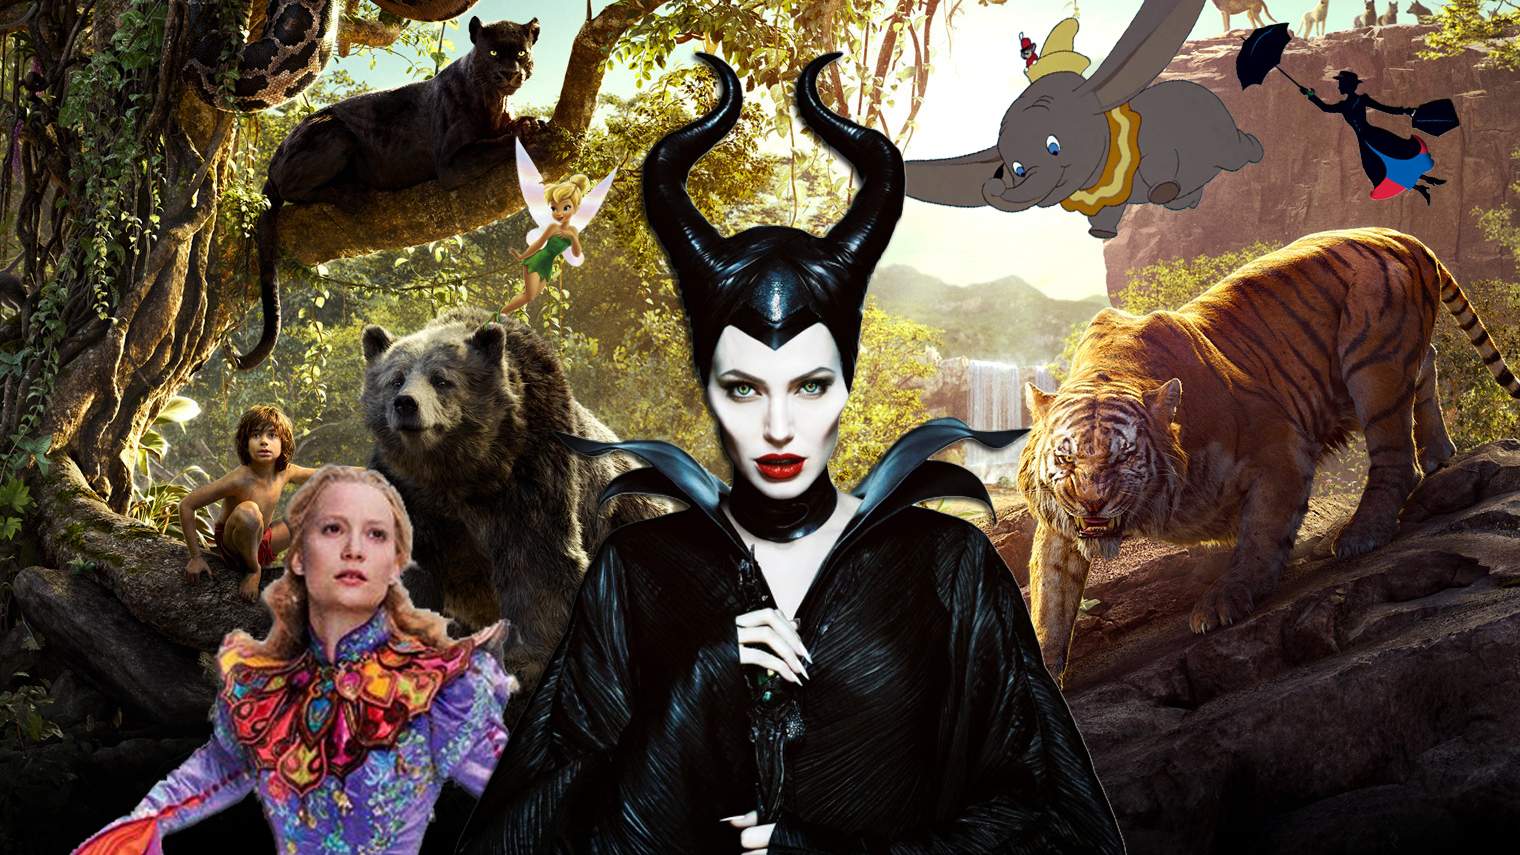 Disney announces Maleficent 2, Jungle Book 2 and more!